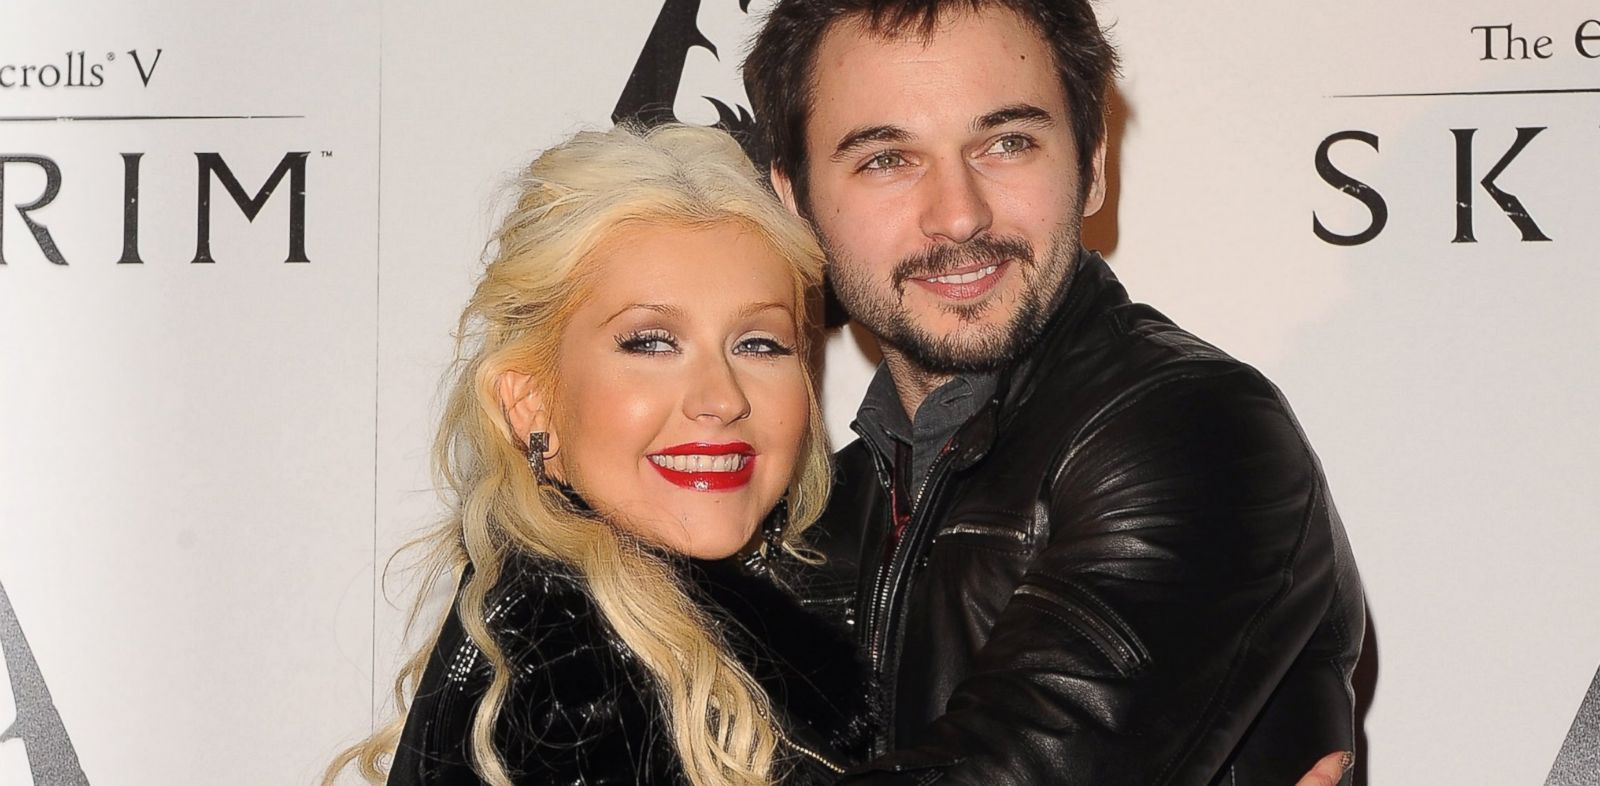 PHOTO: Singer Christina Aguilera and Matt Rutler arrive at the official launch party for The Elder Scrolls V: Skyrim in this Nov. 8, 2011, file photo.